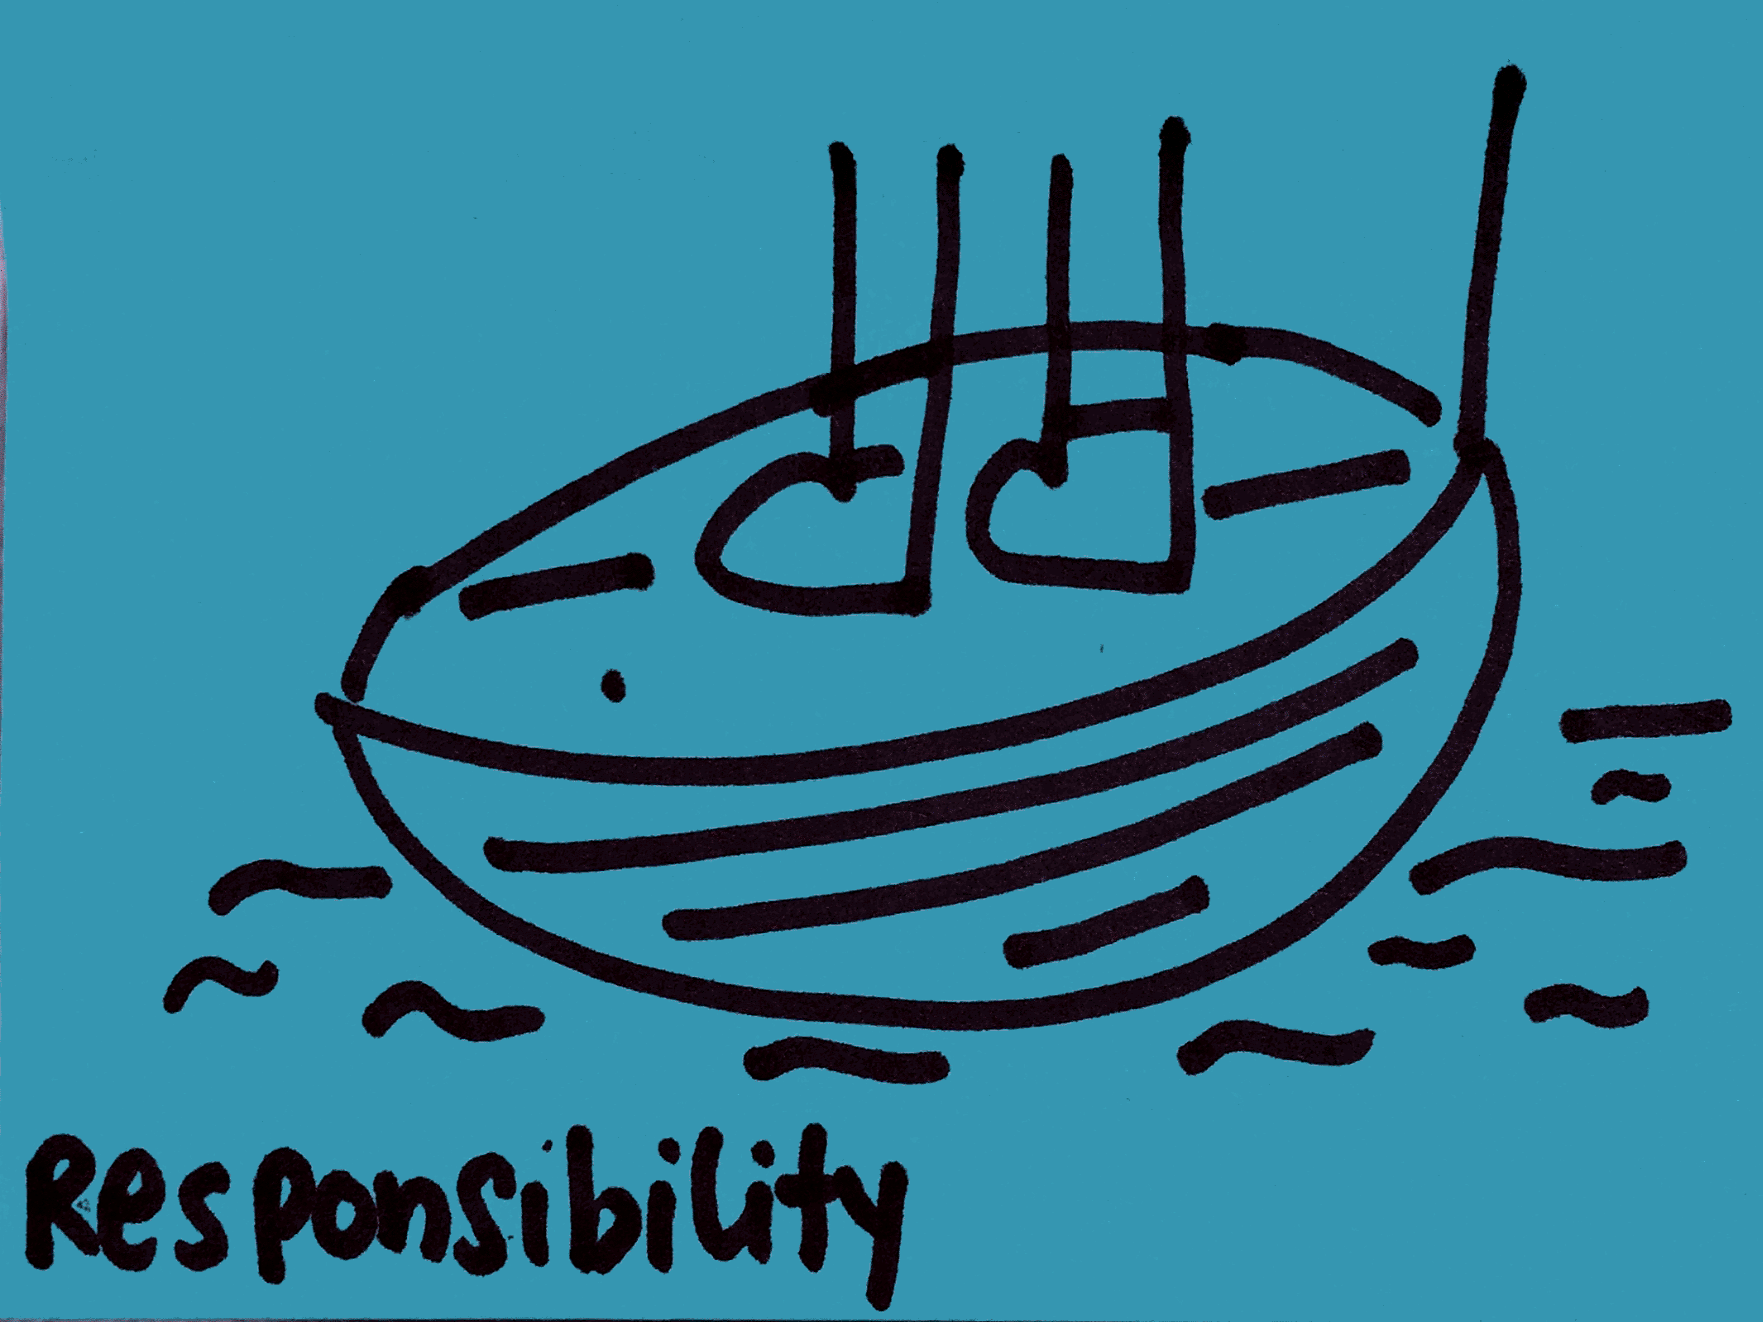 Responsibility StrengthsFinder Singapore Two Feet in Boat